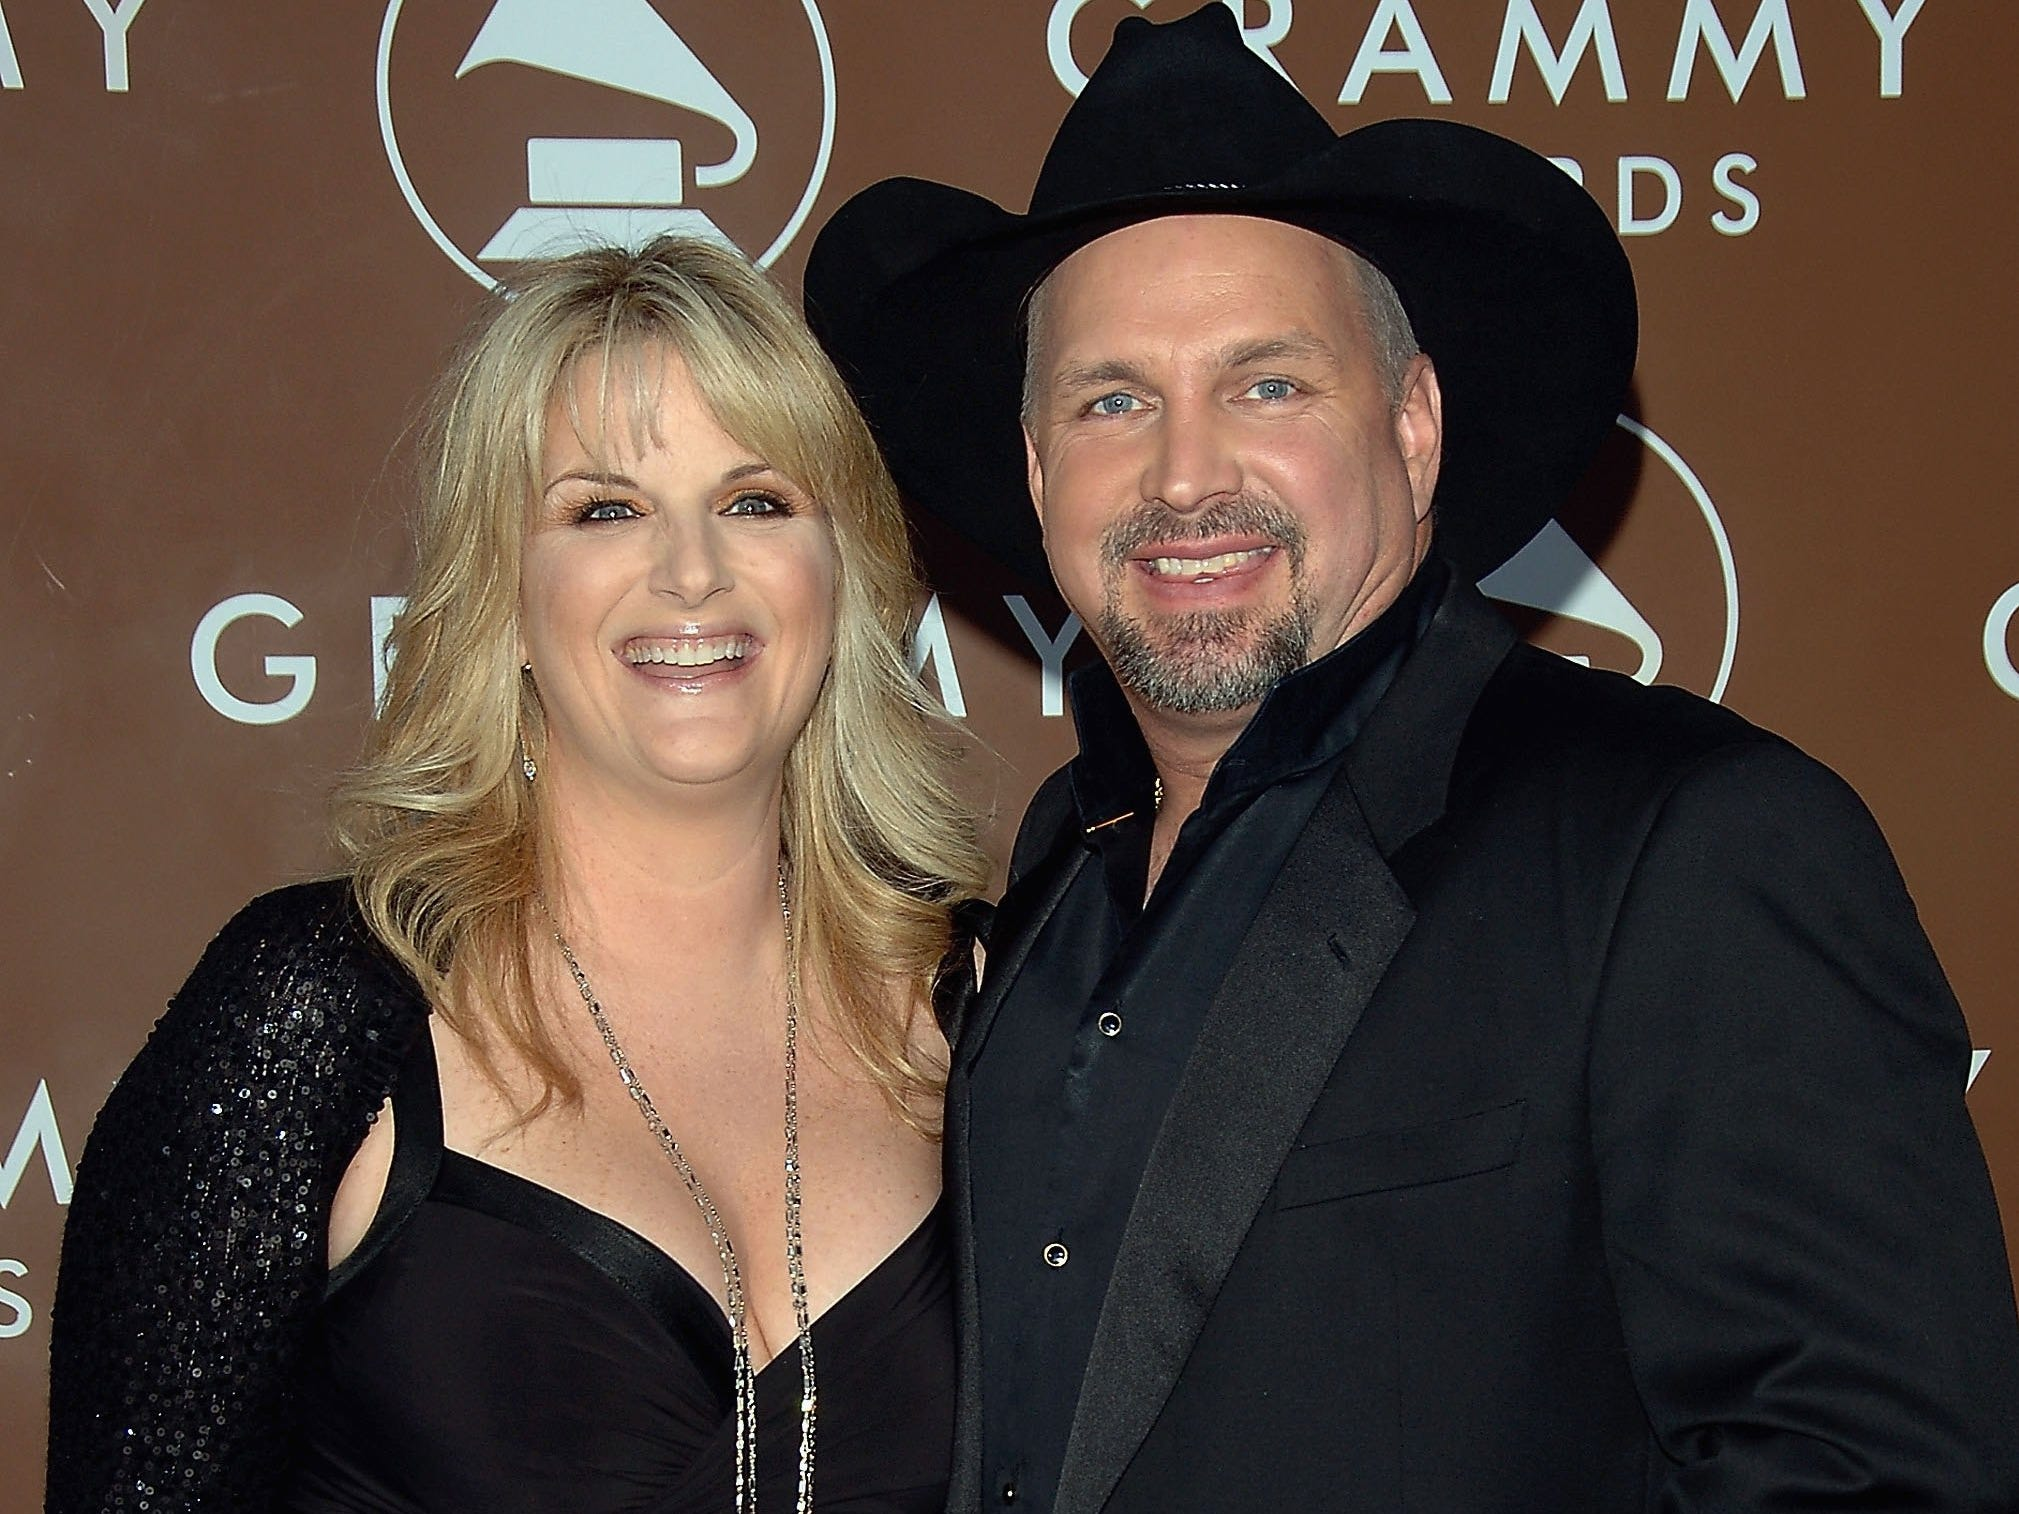 Trisha Yearwood and Singer Garth Brooks arrive at the 48th Annual Grammy Awards at the Staples Center on February 8, 2006 in Los Angeles, California.  (Photo by Stephen Shugerman/Getty Images)